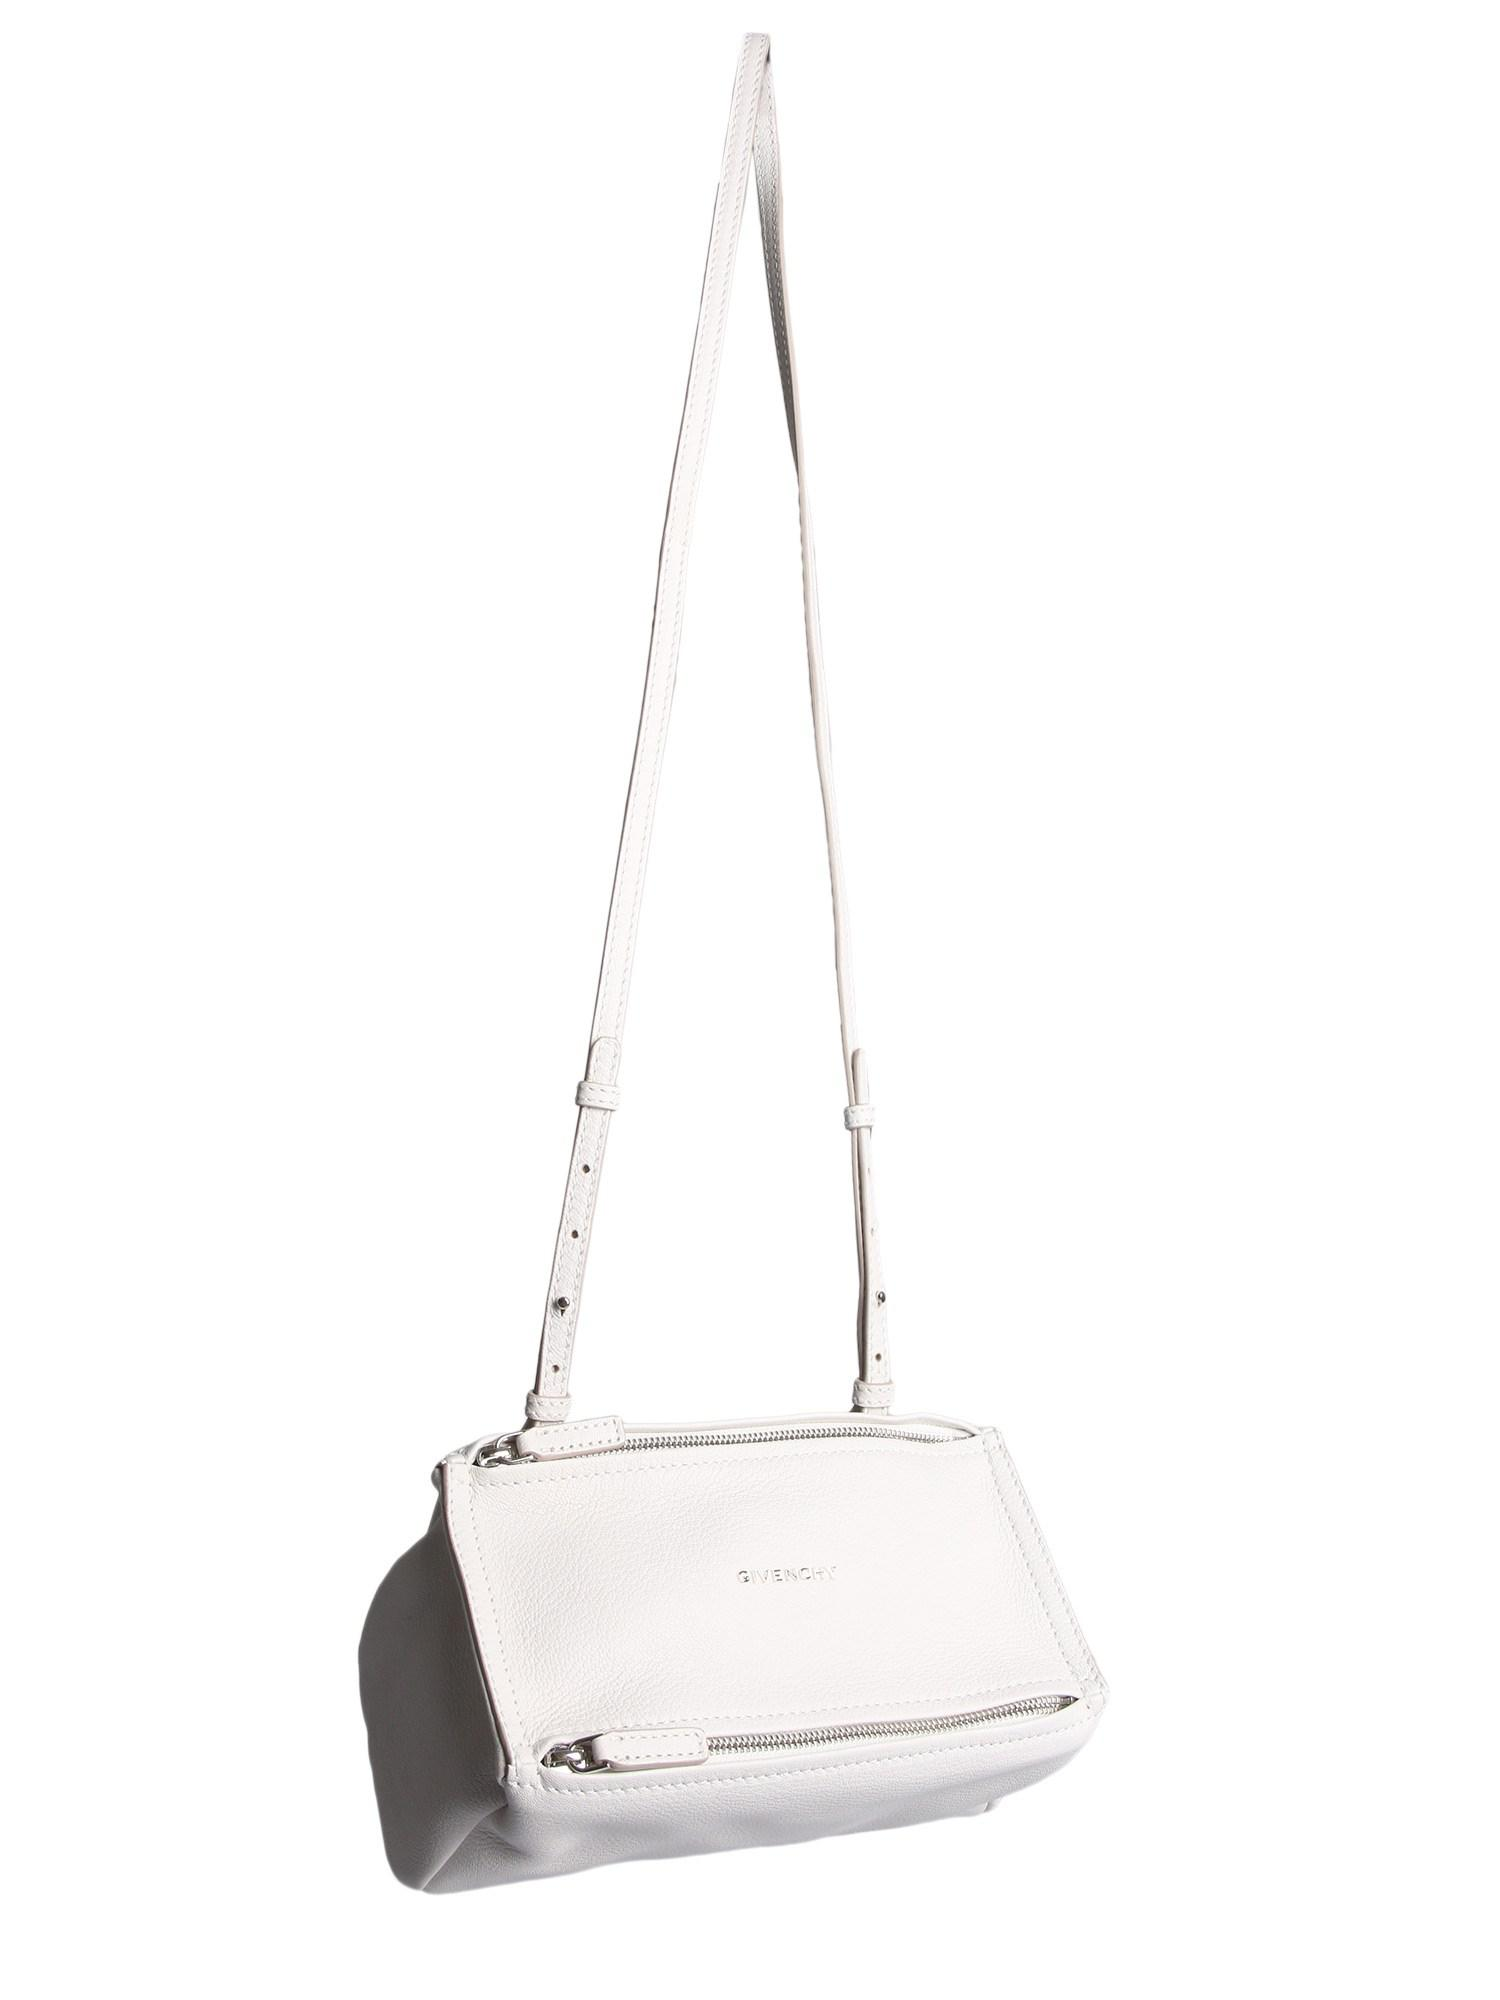 6fd1b3da9ad Givenchy - White Small Pandora Bag In Hammered Leather - Lyst. View  fullscreen